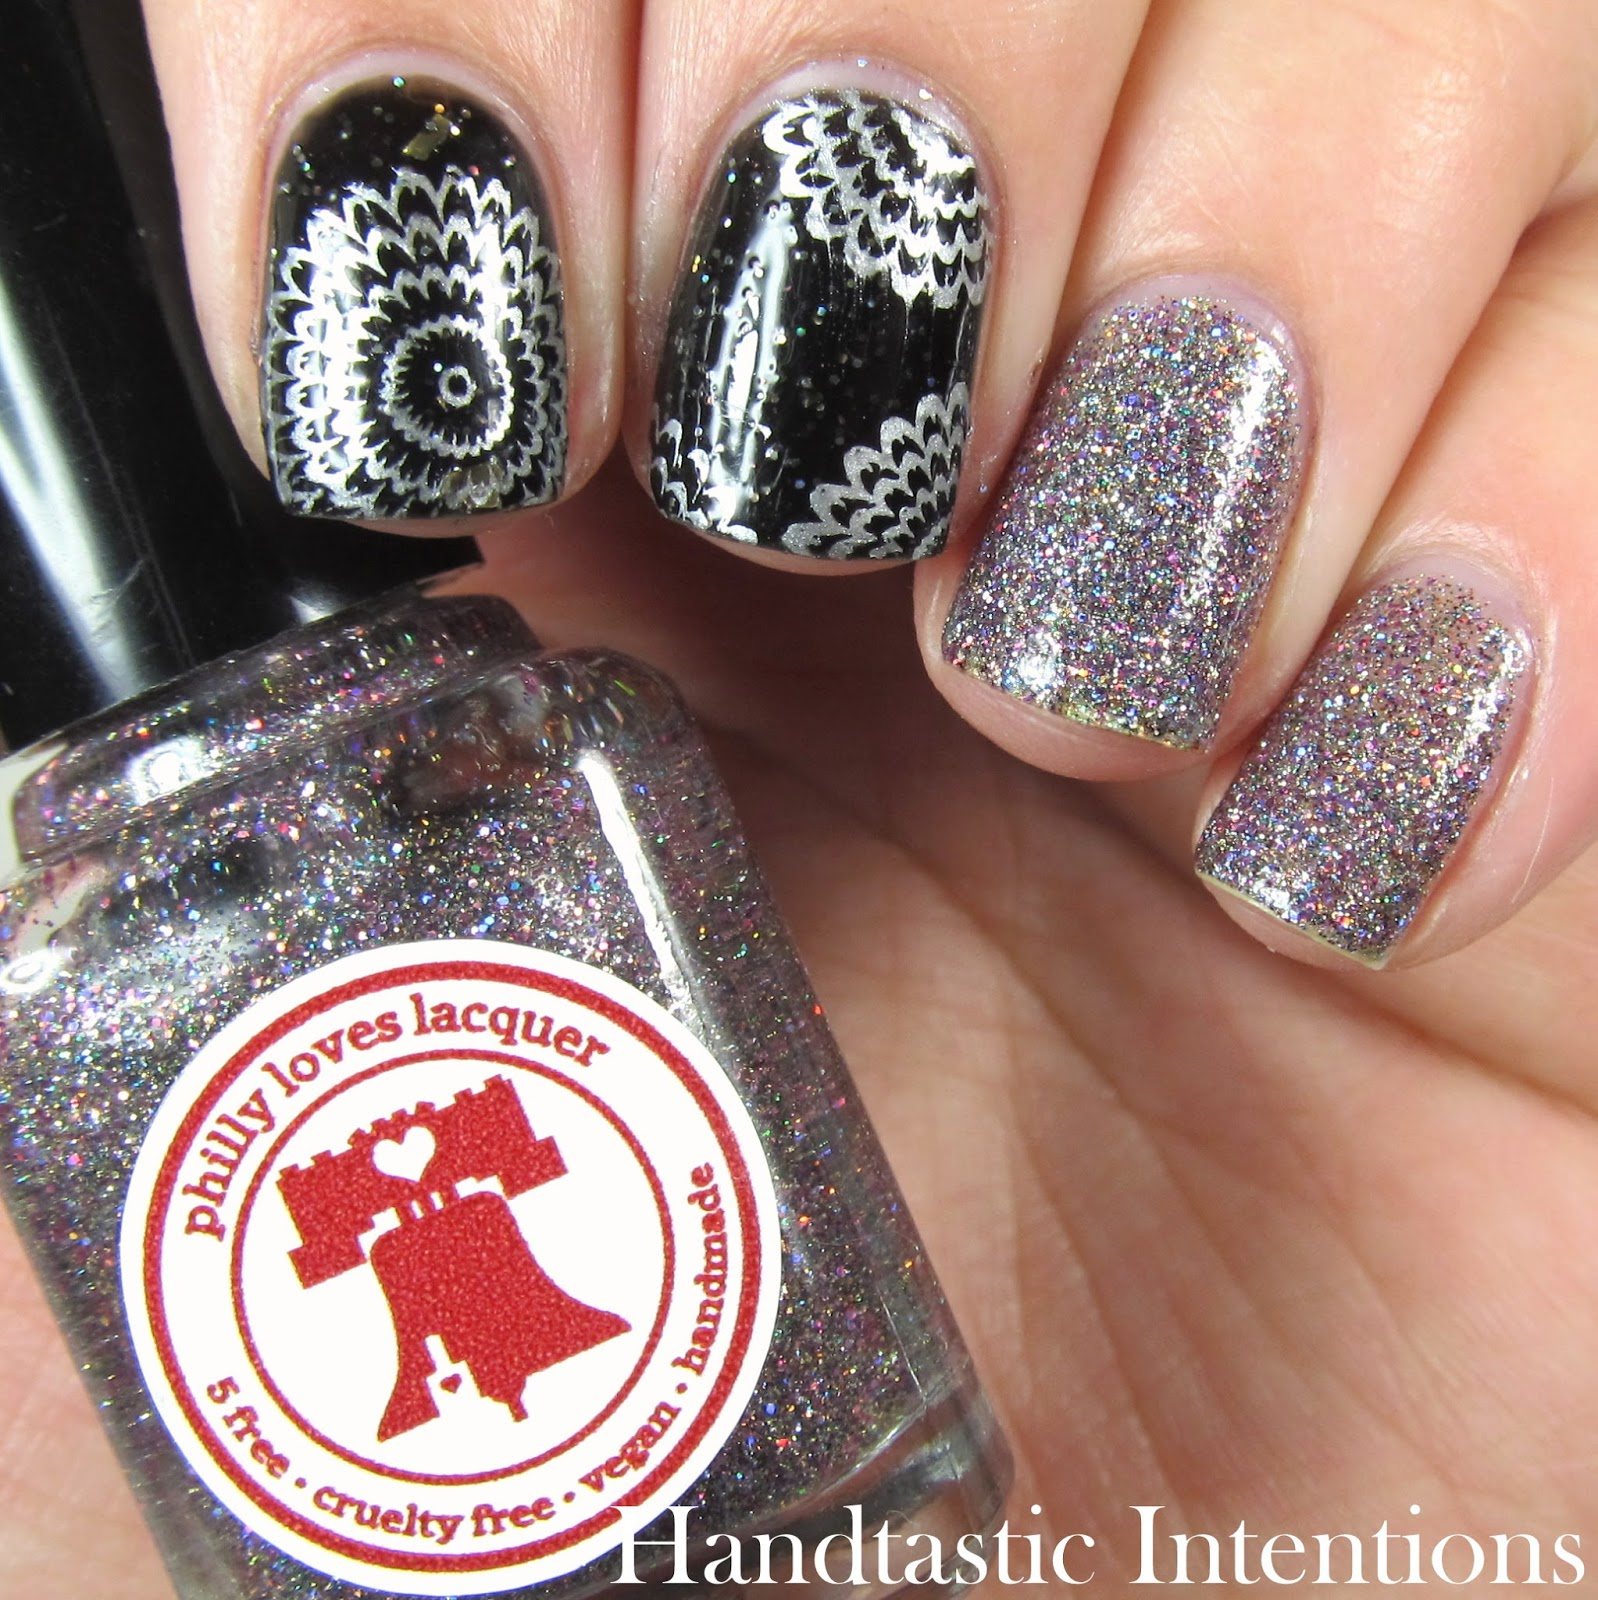 Handtastic Intentions: New Years Eve Nail Art